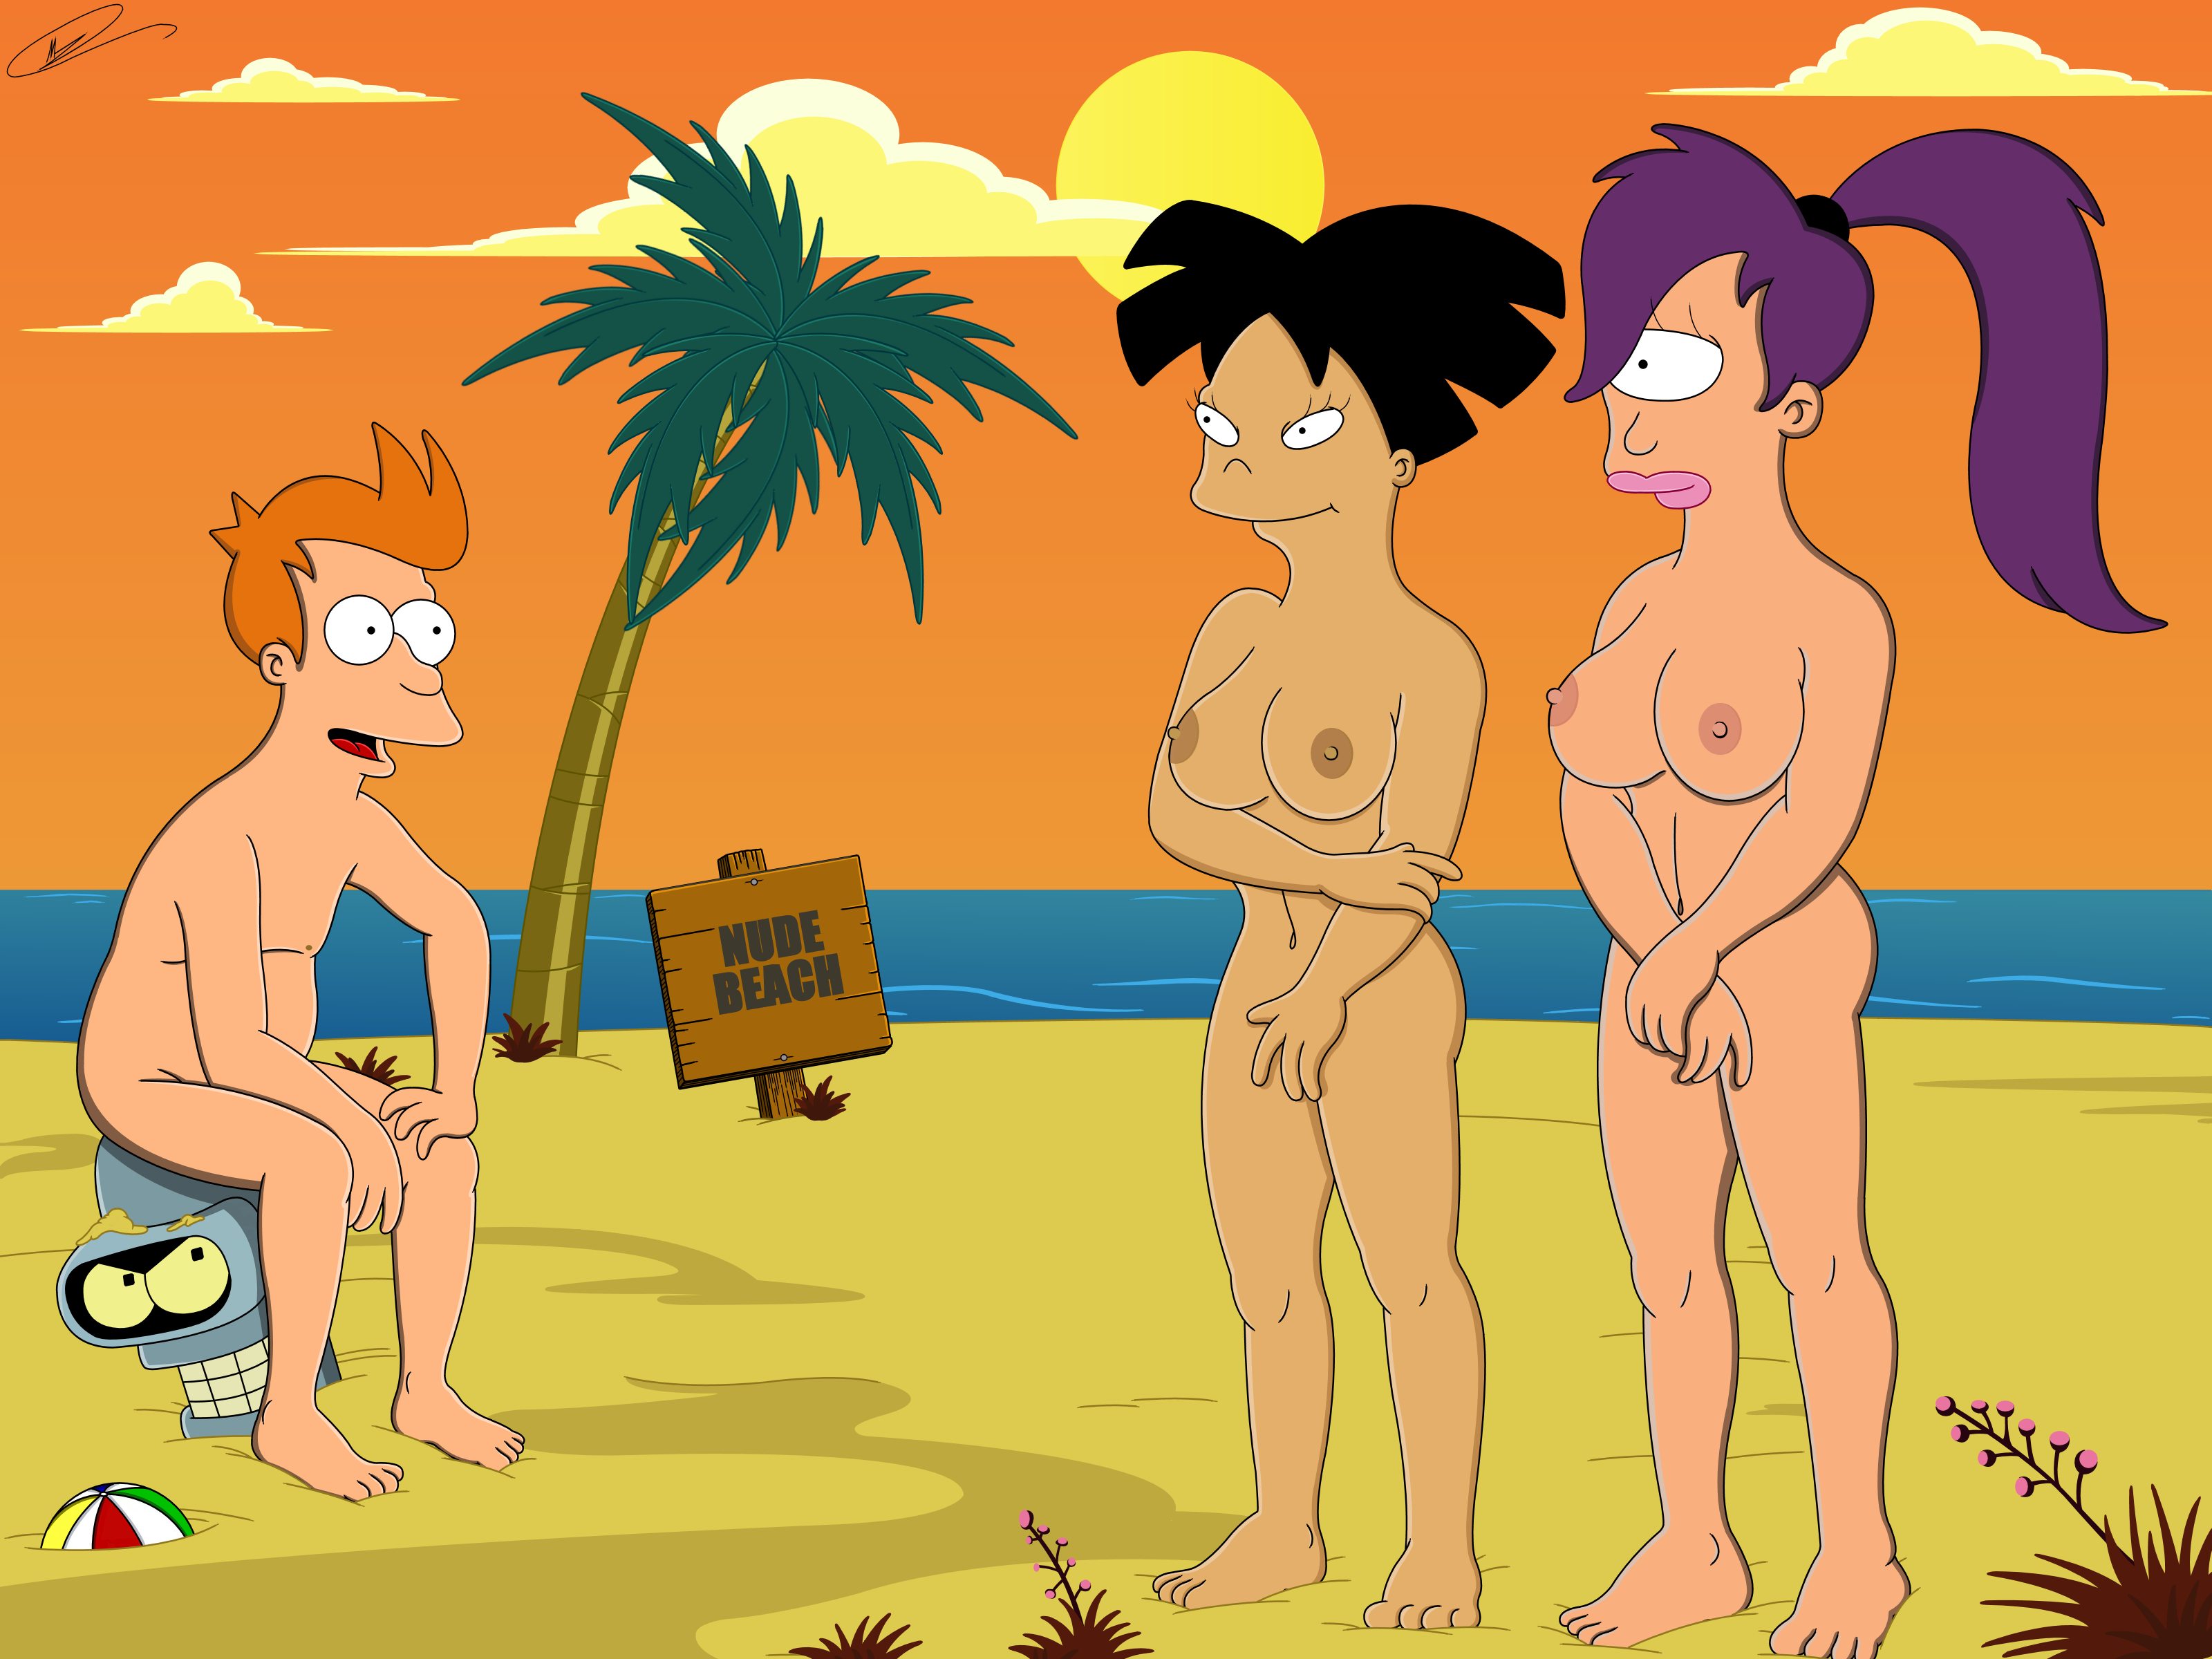 Word honour. Futurama leela and amy nude